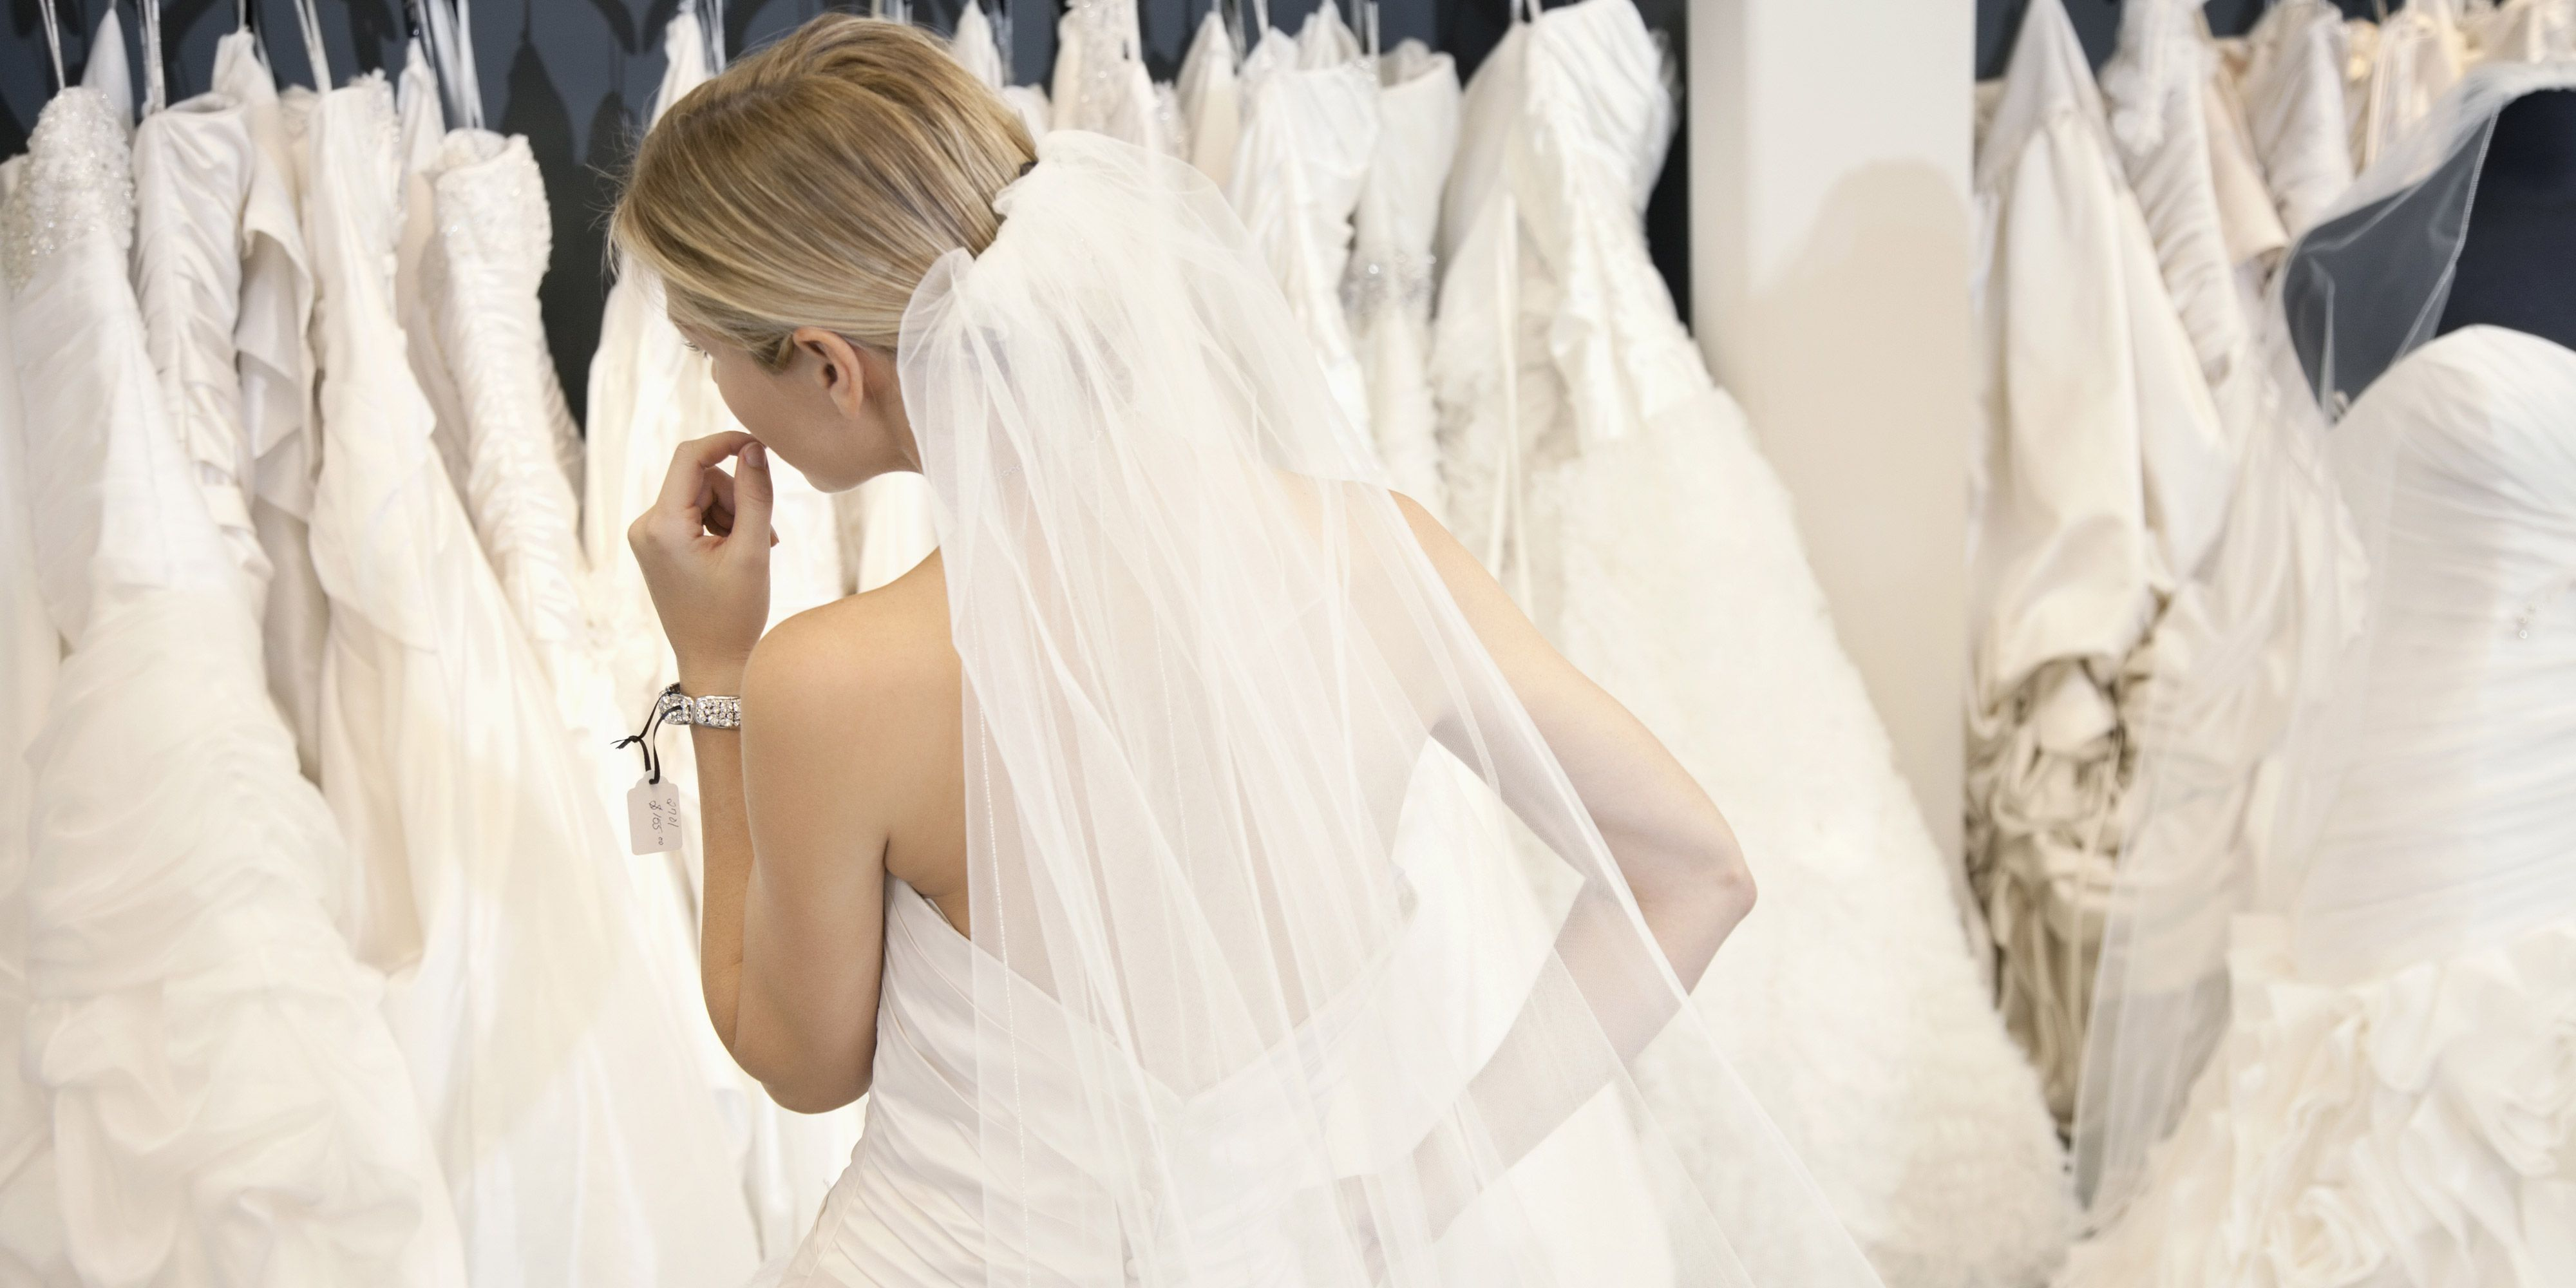 wedding gown shopping etiquette shop wedding dresses Wedding Gown Shopping Etiquette Rules To Keep In Mind Before Buying A Wedding Gown